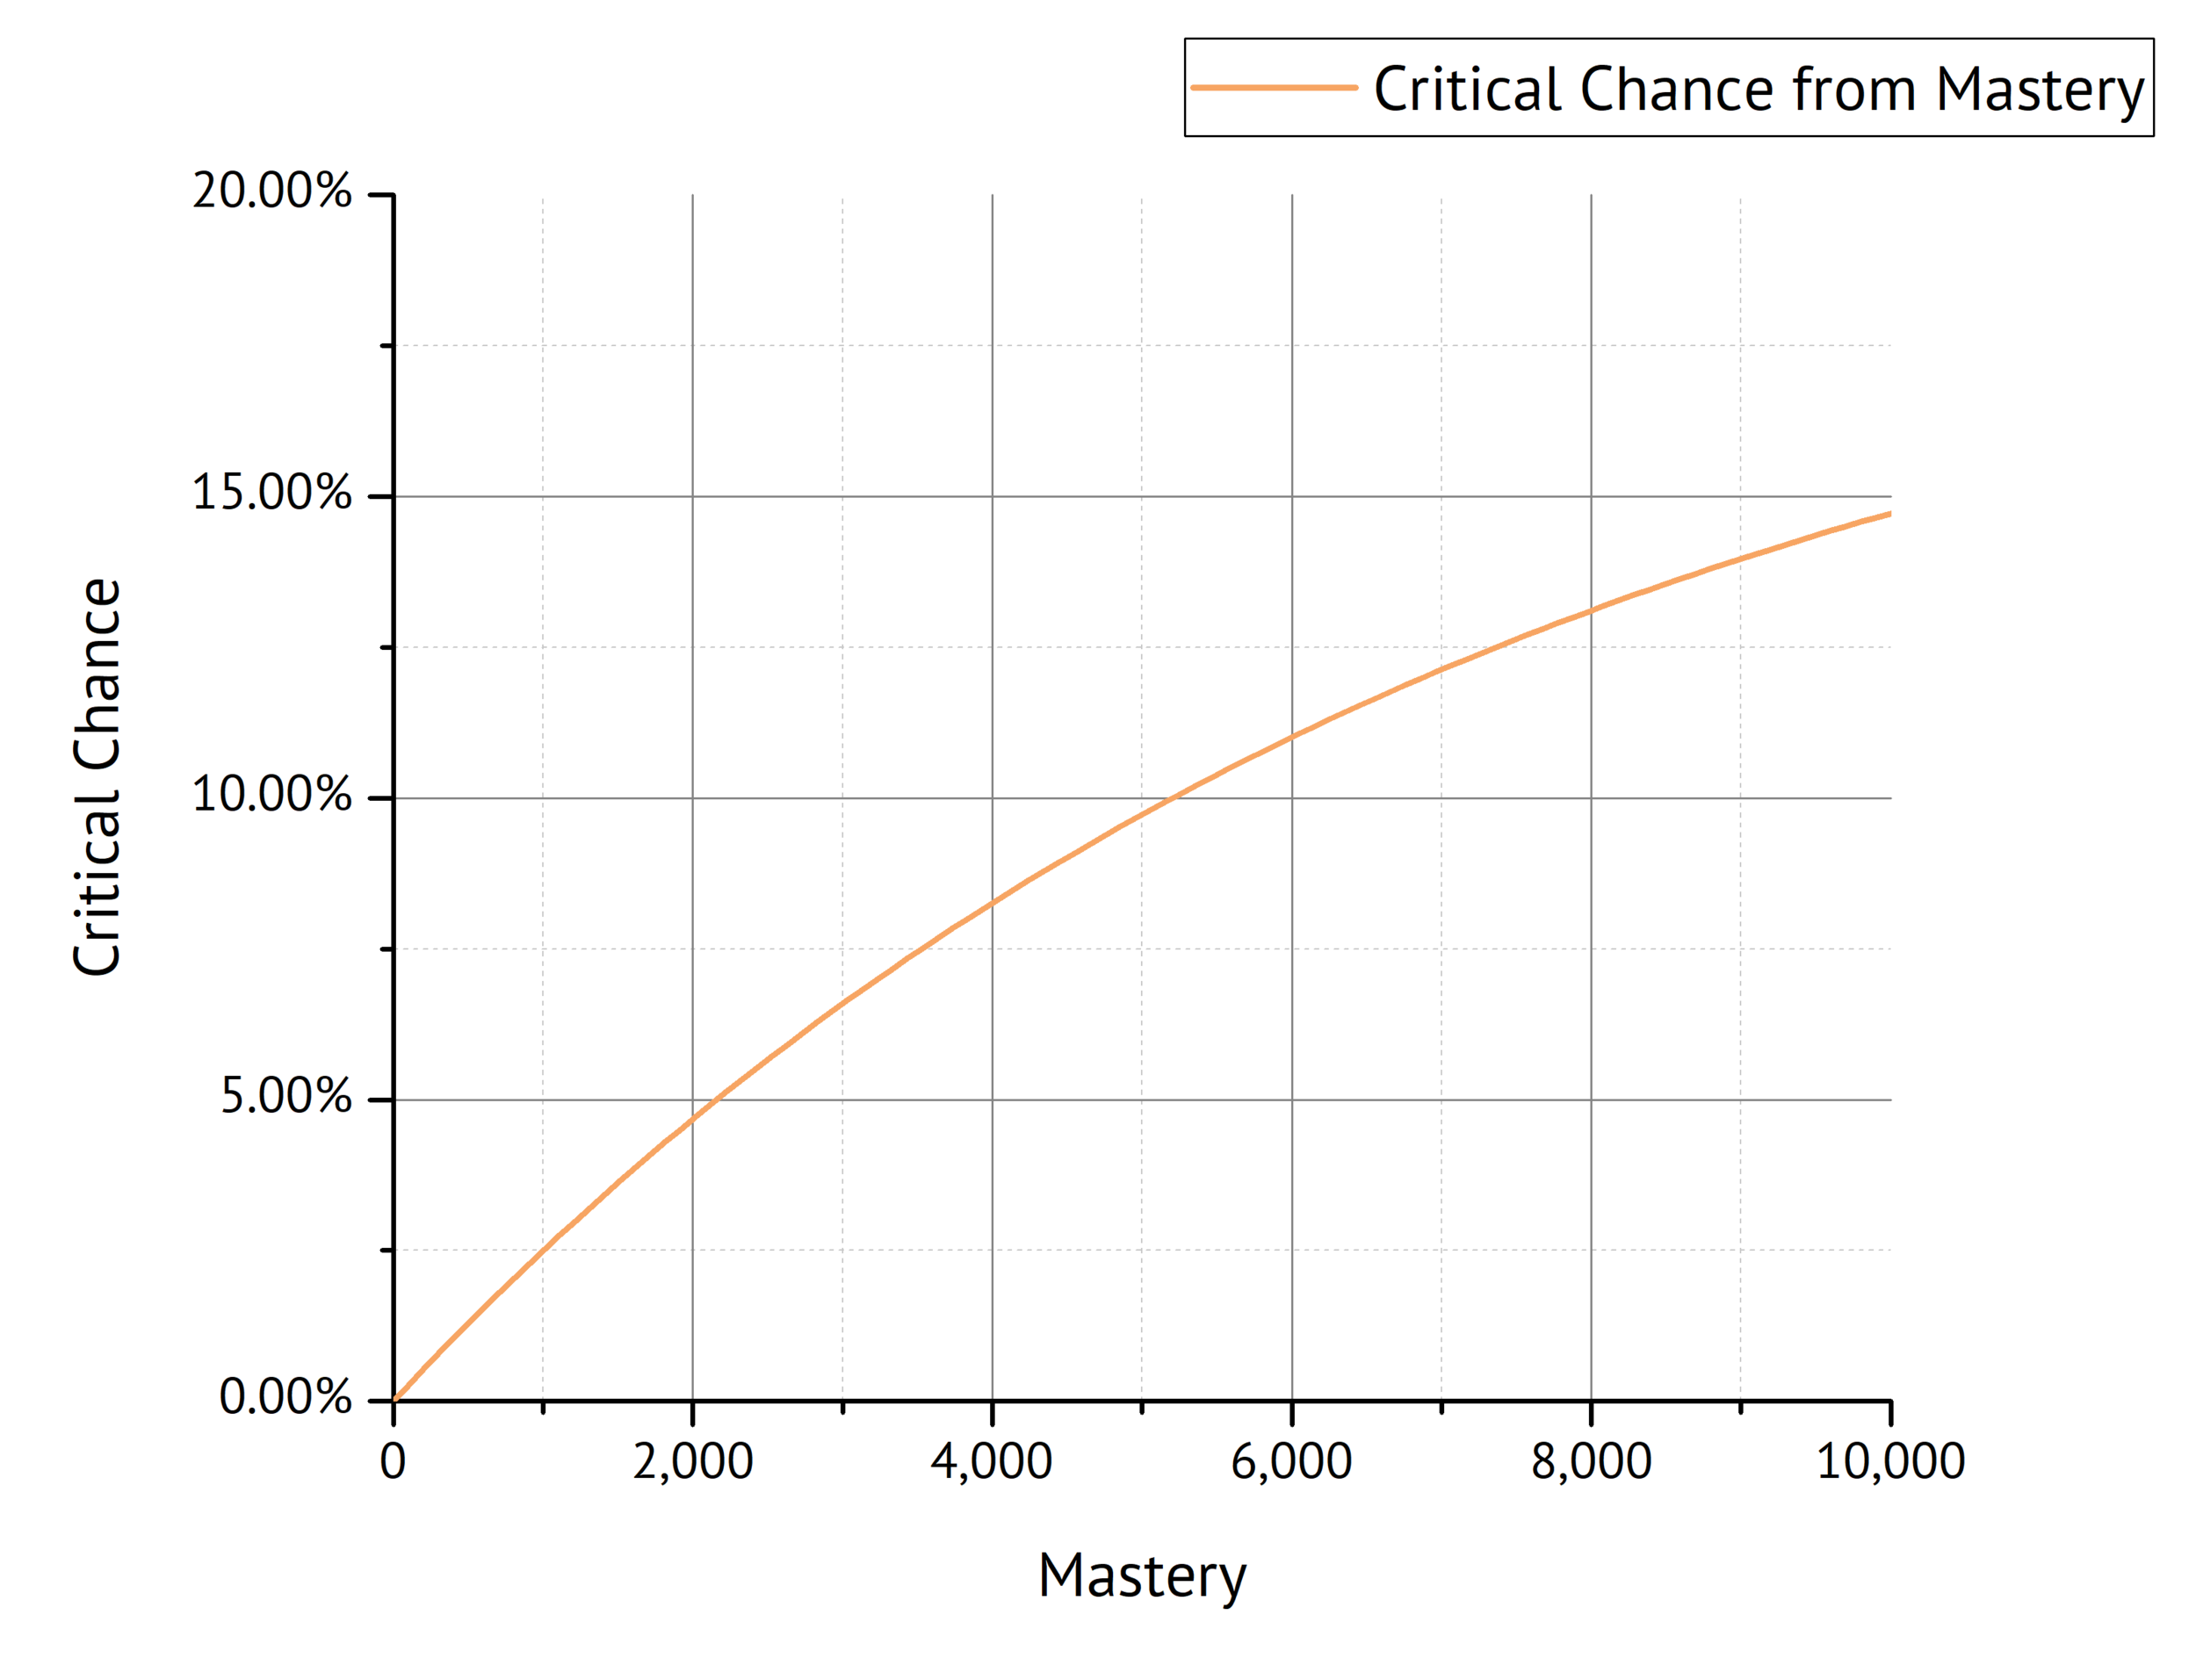 Fig. 4: Critical Chance as a function of Mastery.